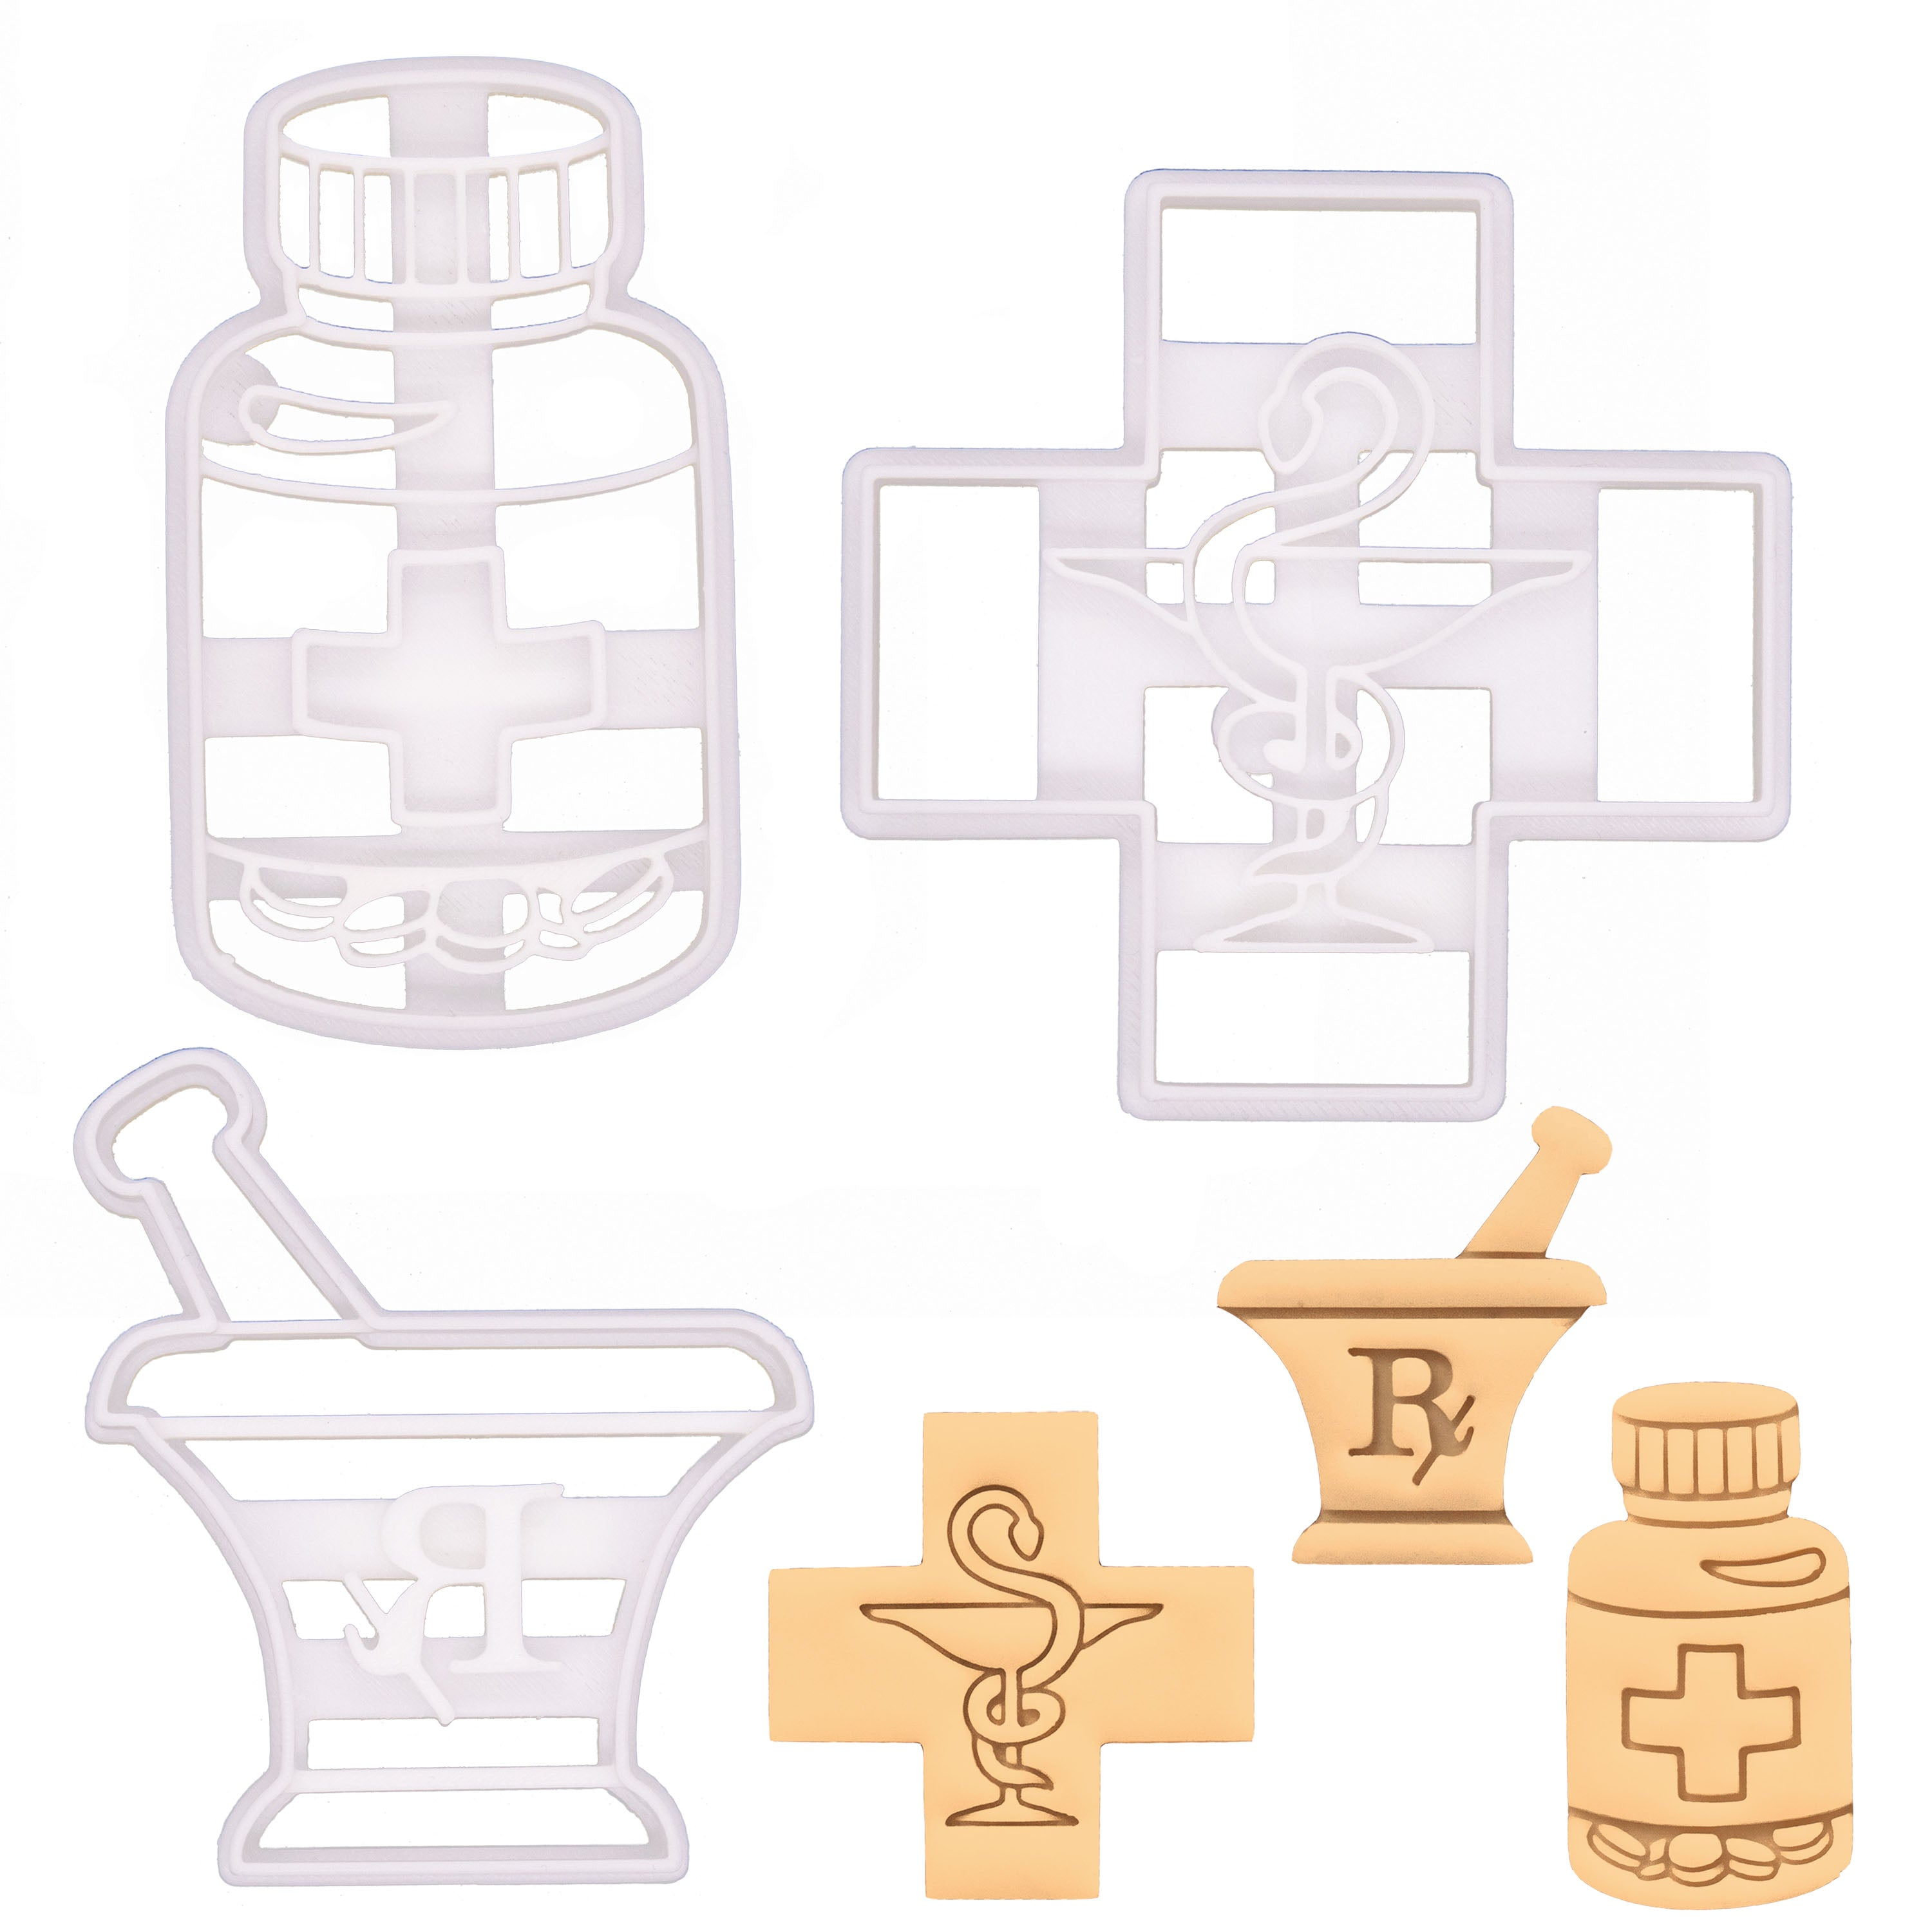 set of 3 pharmacy themed cookie cutters, featuring pharmacy logo, pill bottle, and pestle and mortar